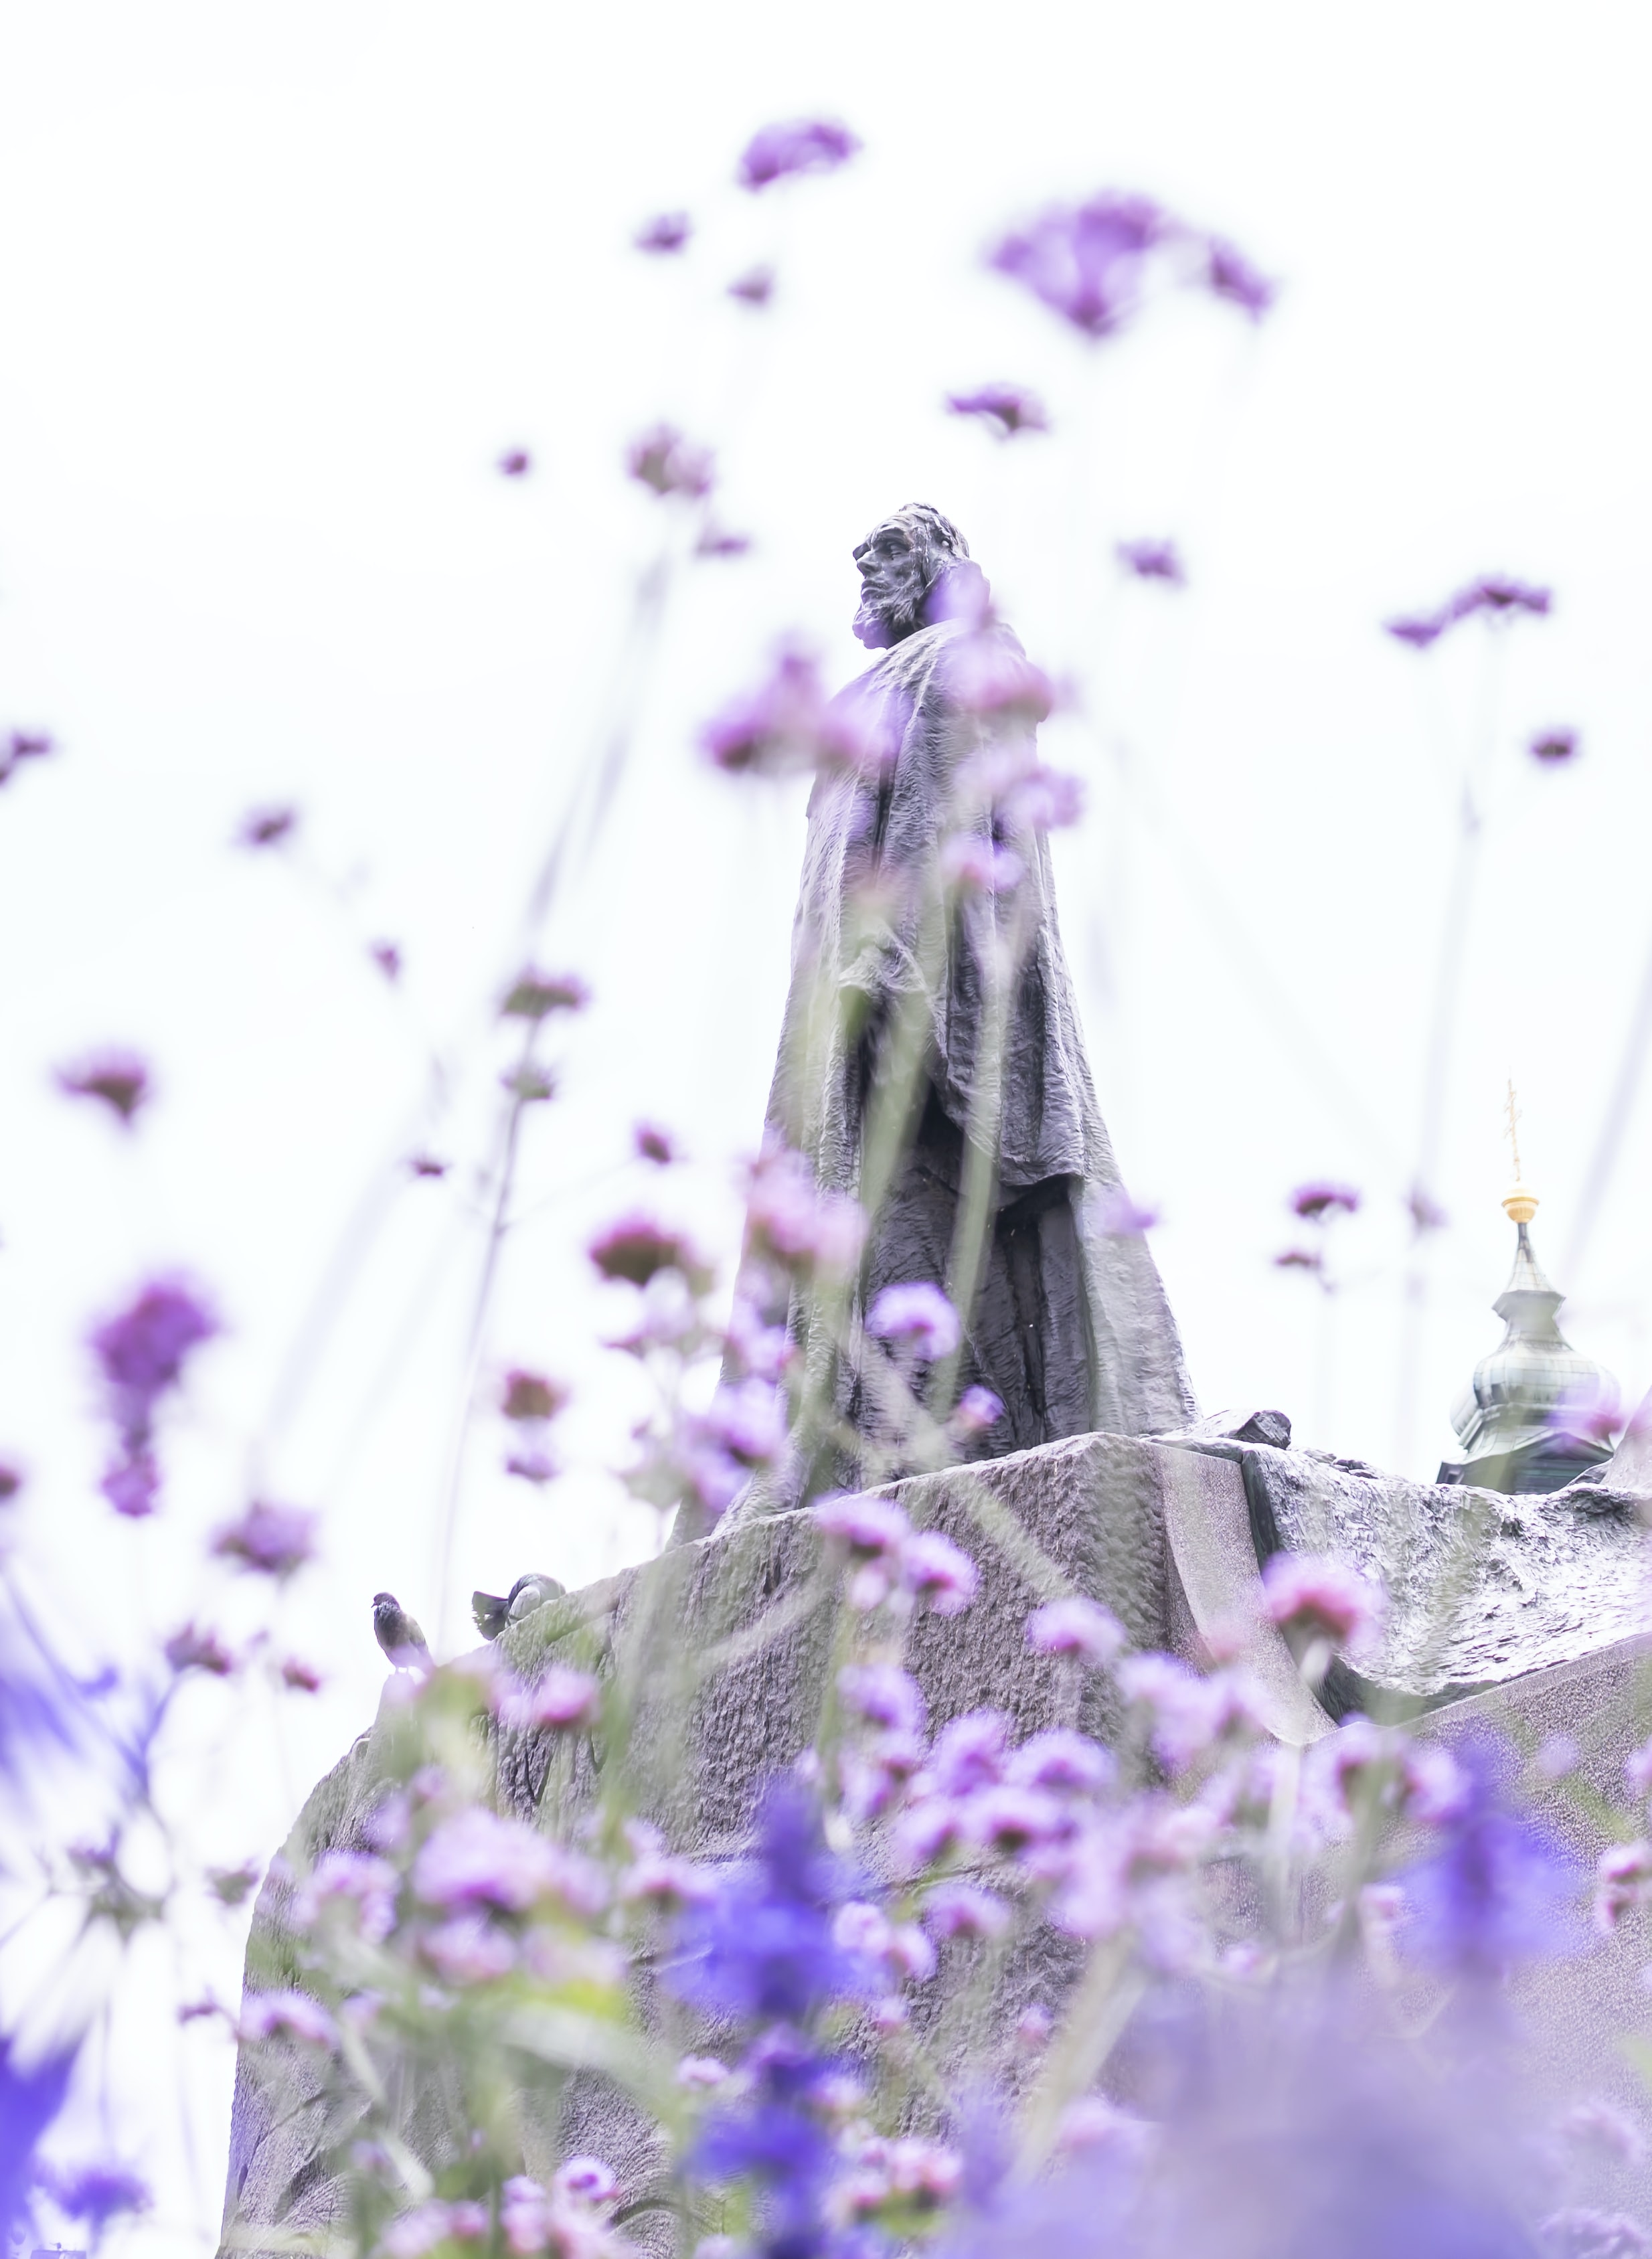 low angle photo of man wearing cloak statue under clear sky